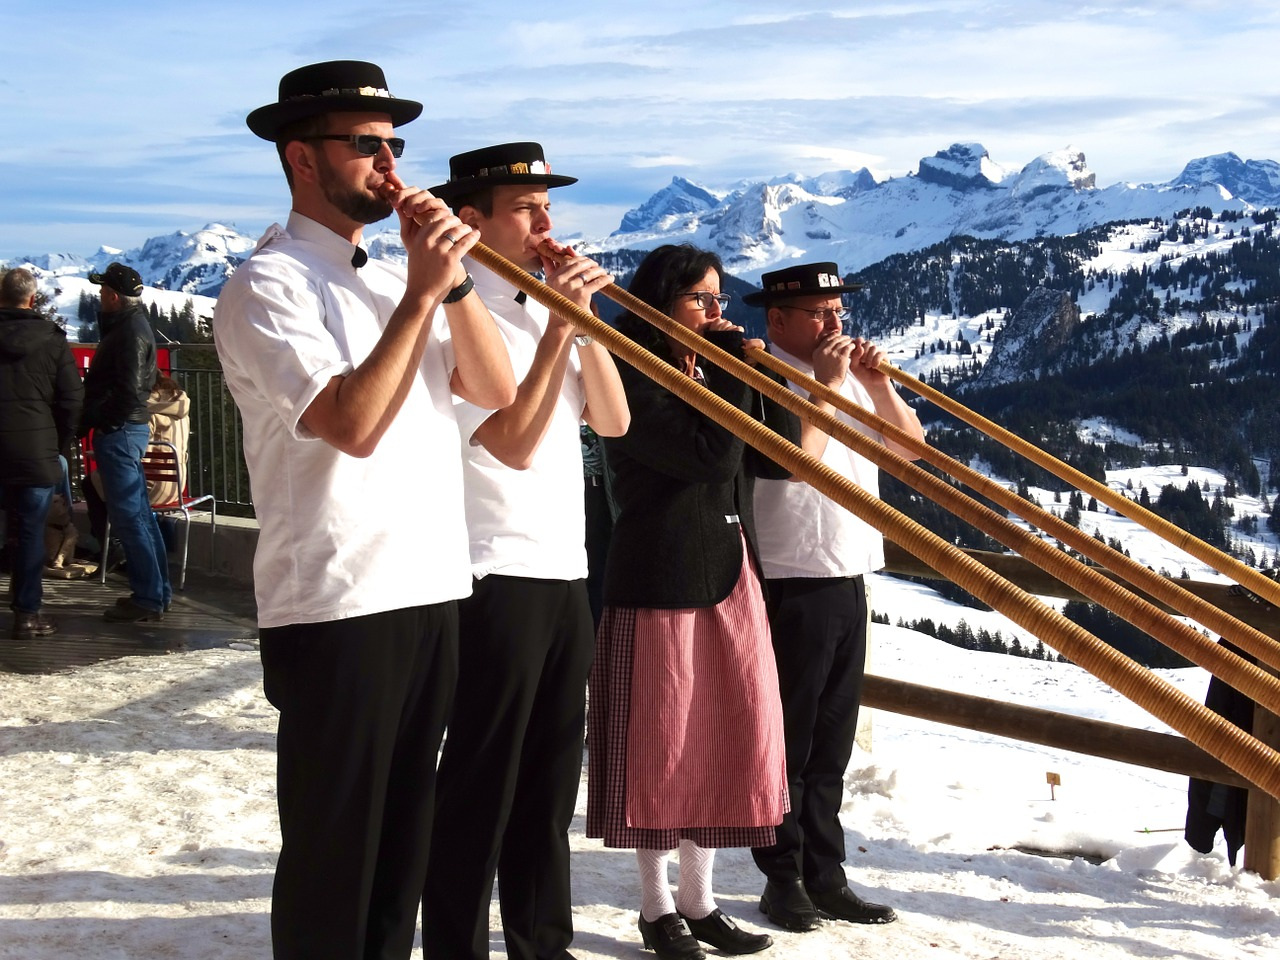 alphorn blowers snow mountains folklore free photo